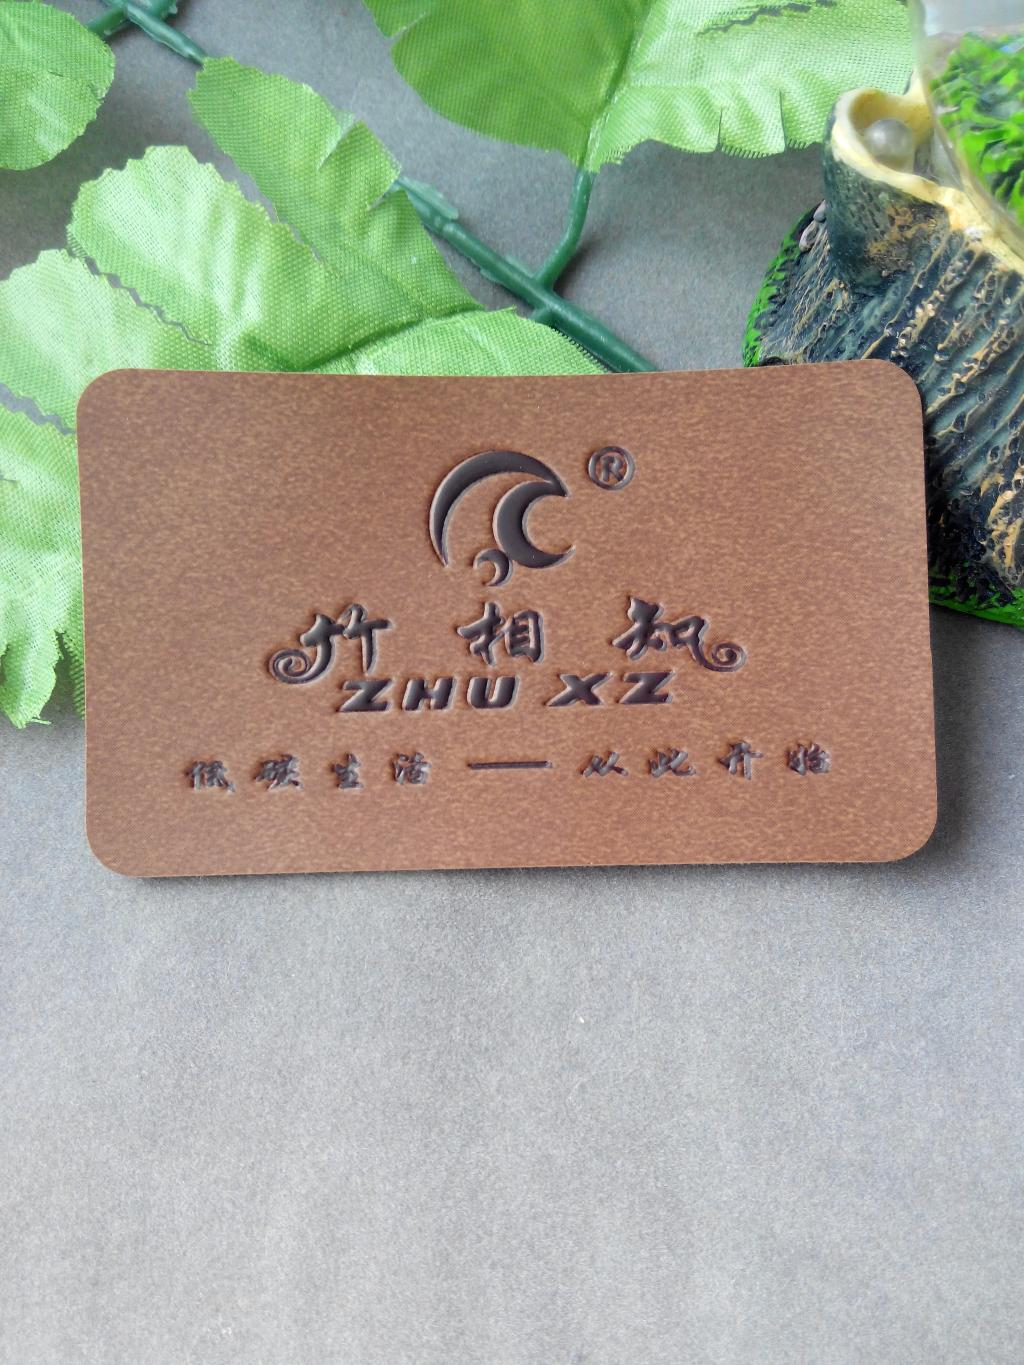 Jeans label leather label imitation leather label clothing bags footwear accessories leather label customization